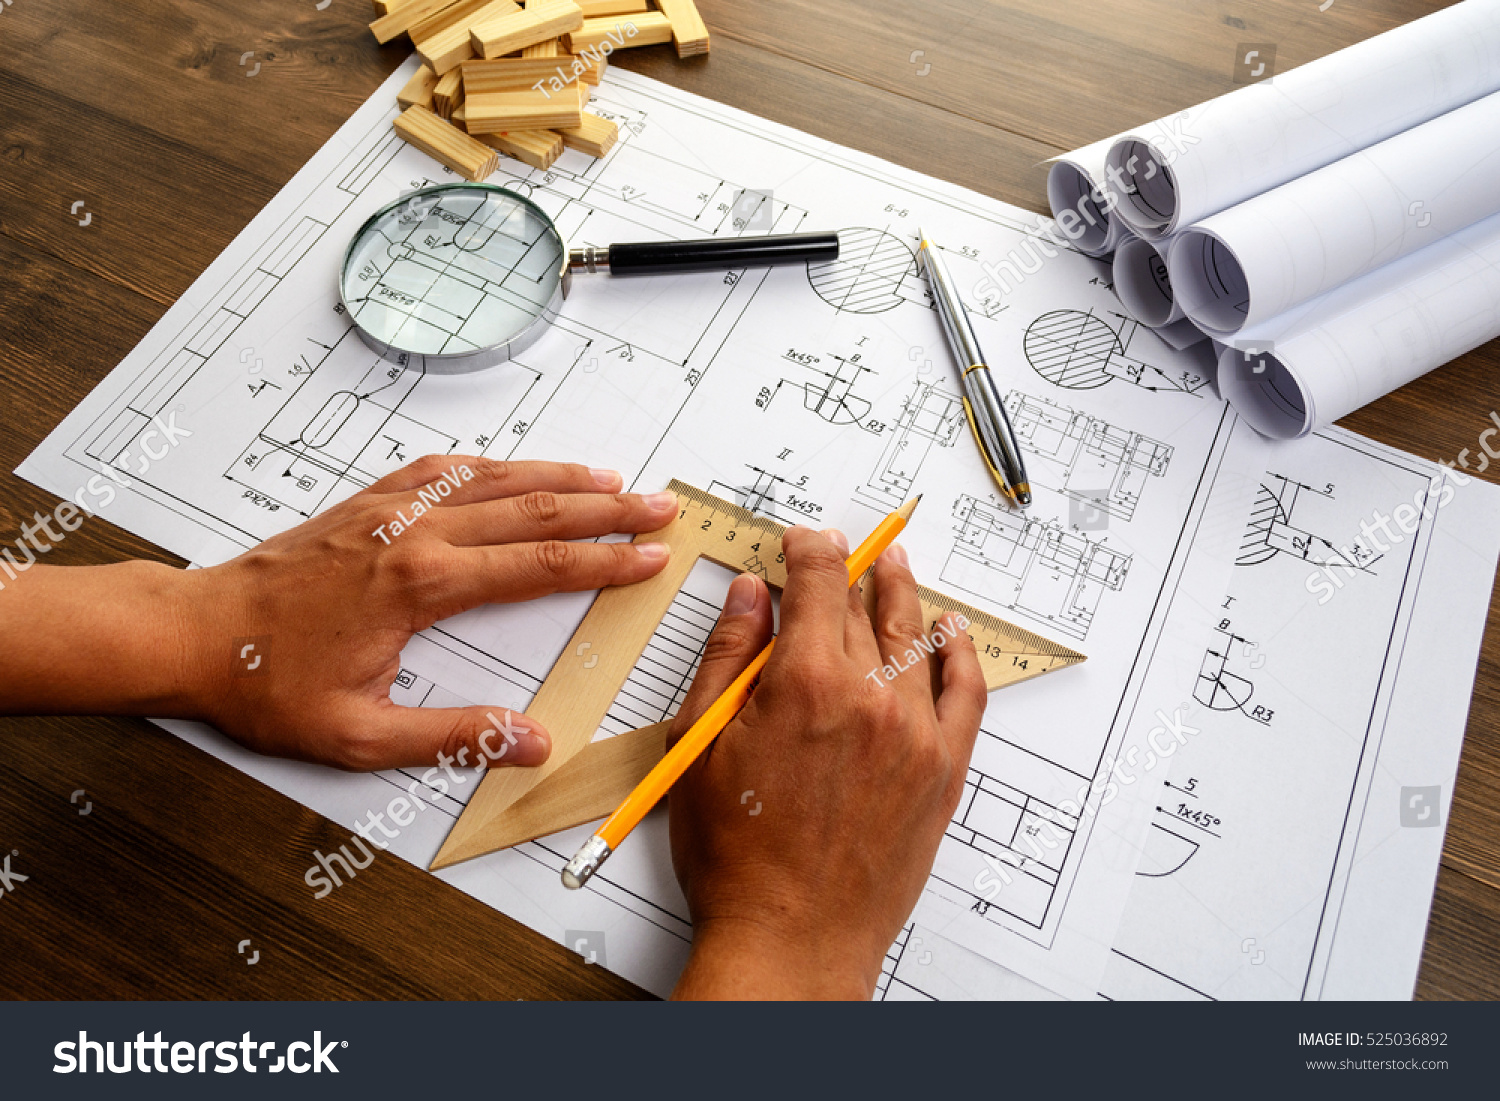 Mechanical engineer at work. Technical drawings. Paper with technical drawings and diagrams. #525036892